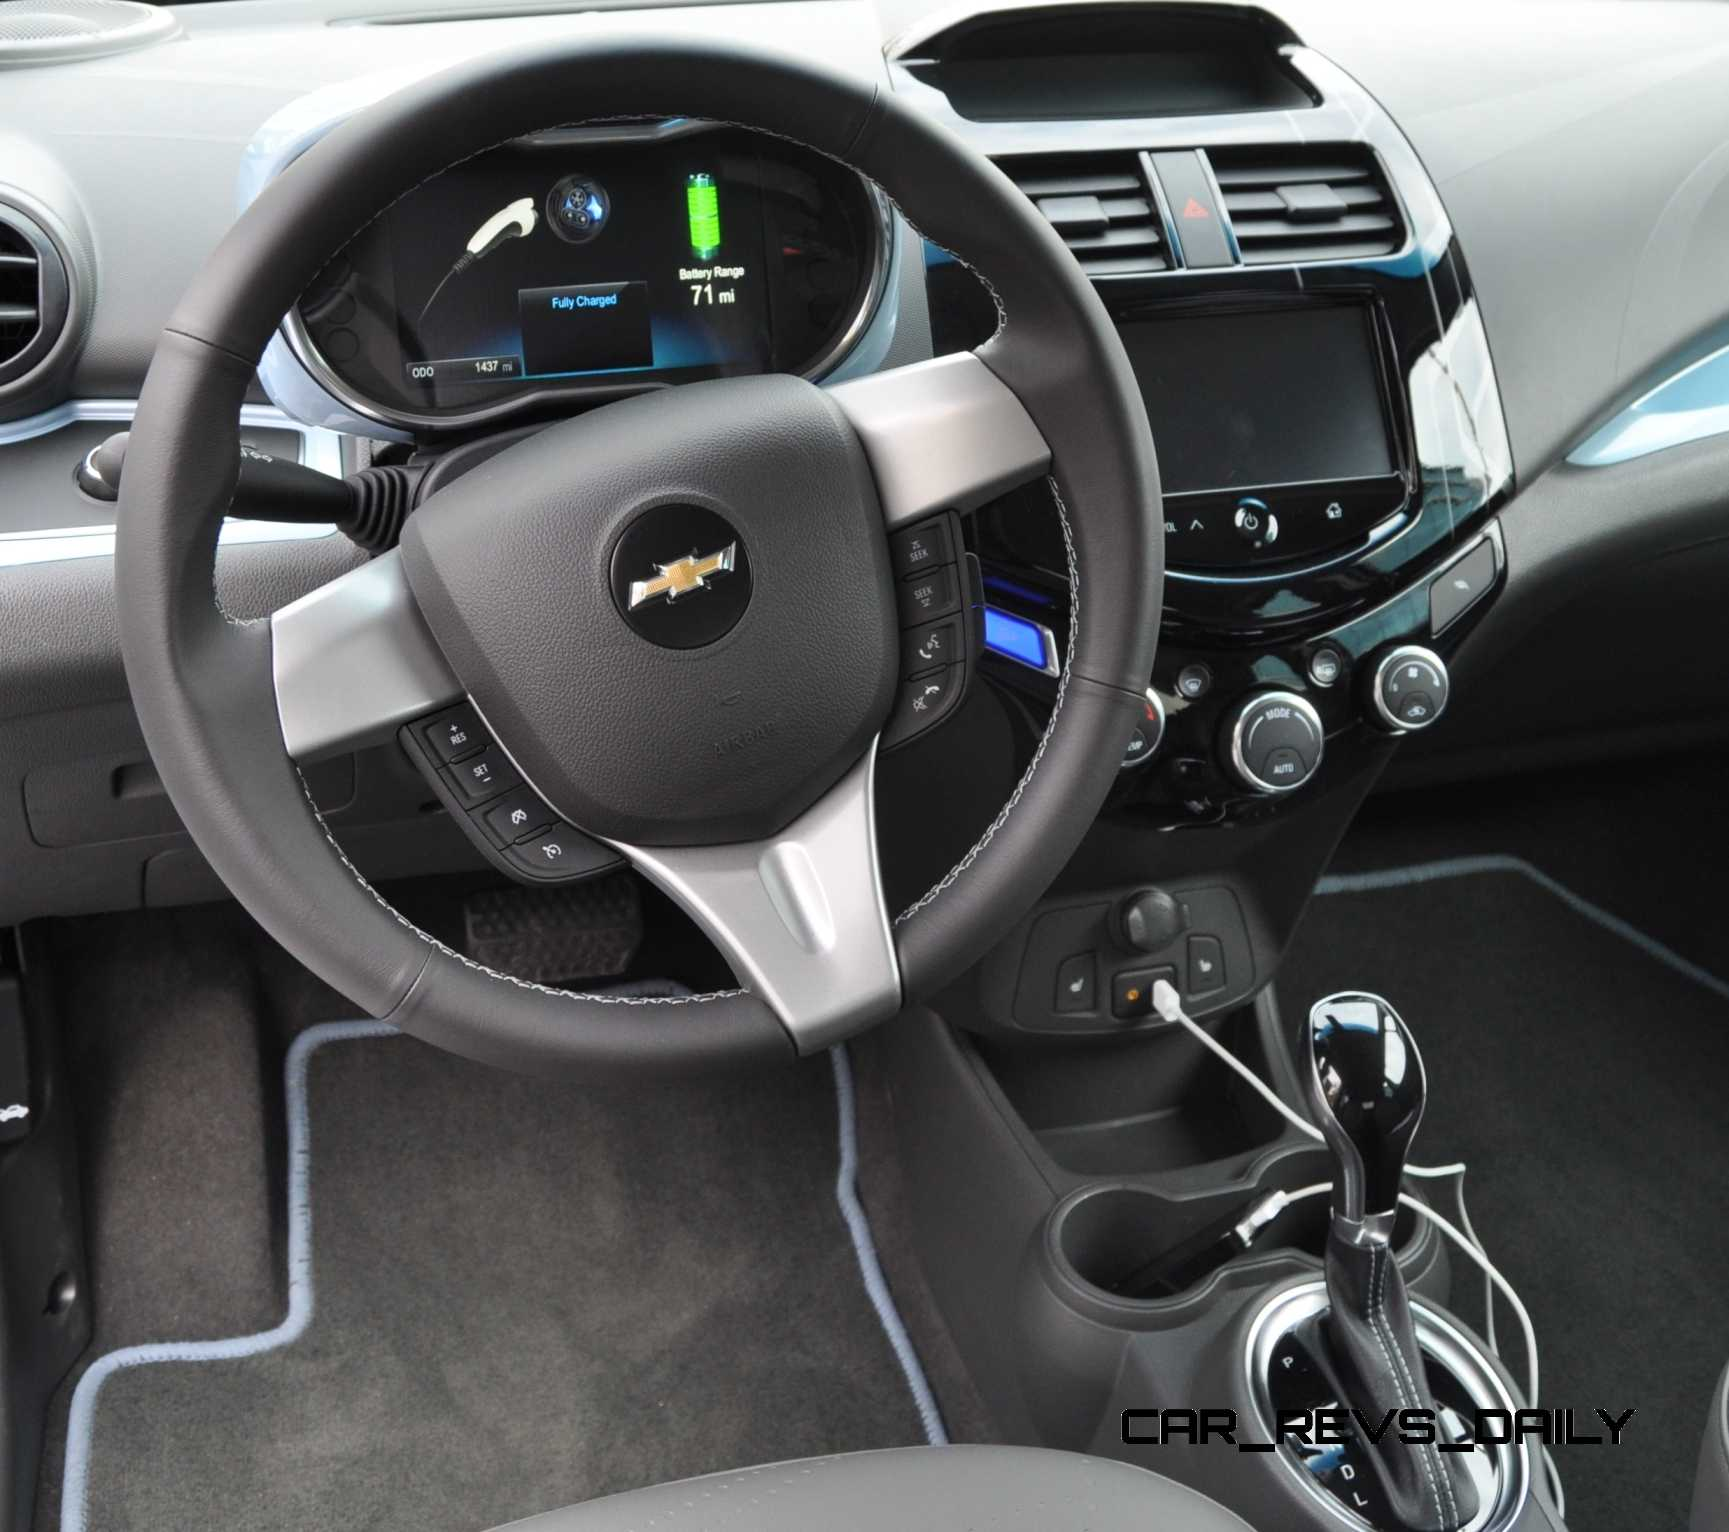 2014 Chevrolet Spark EV - First-Glimpse Photos Inside and